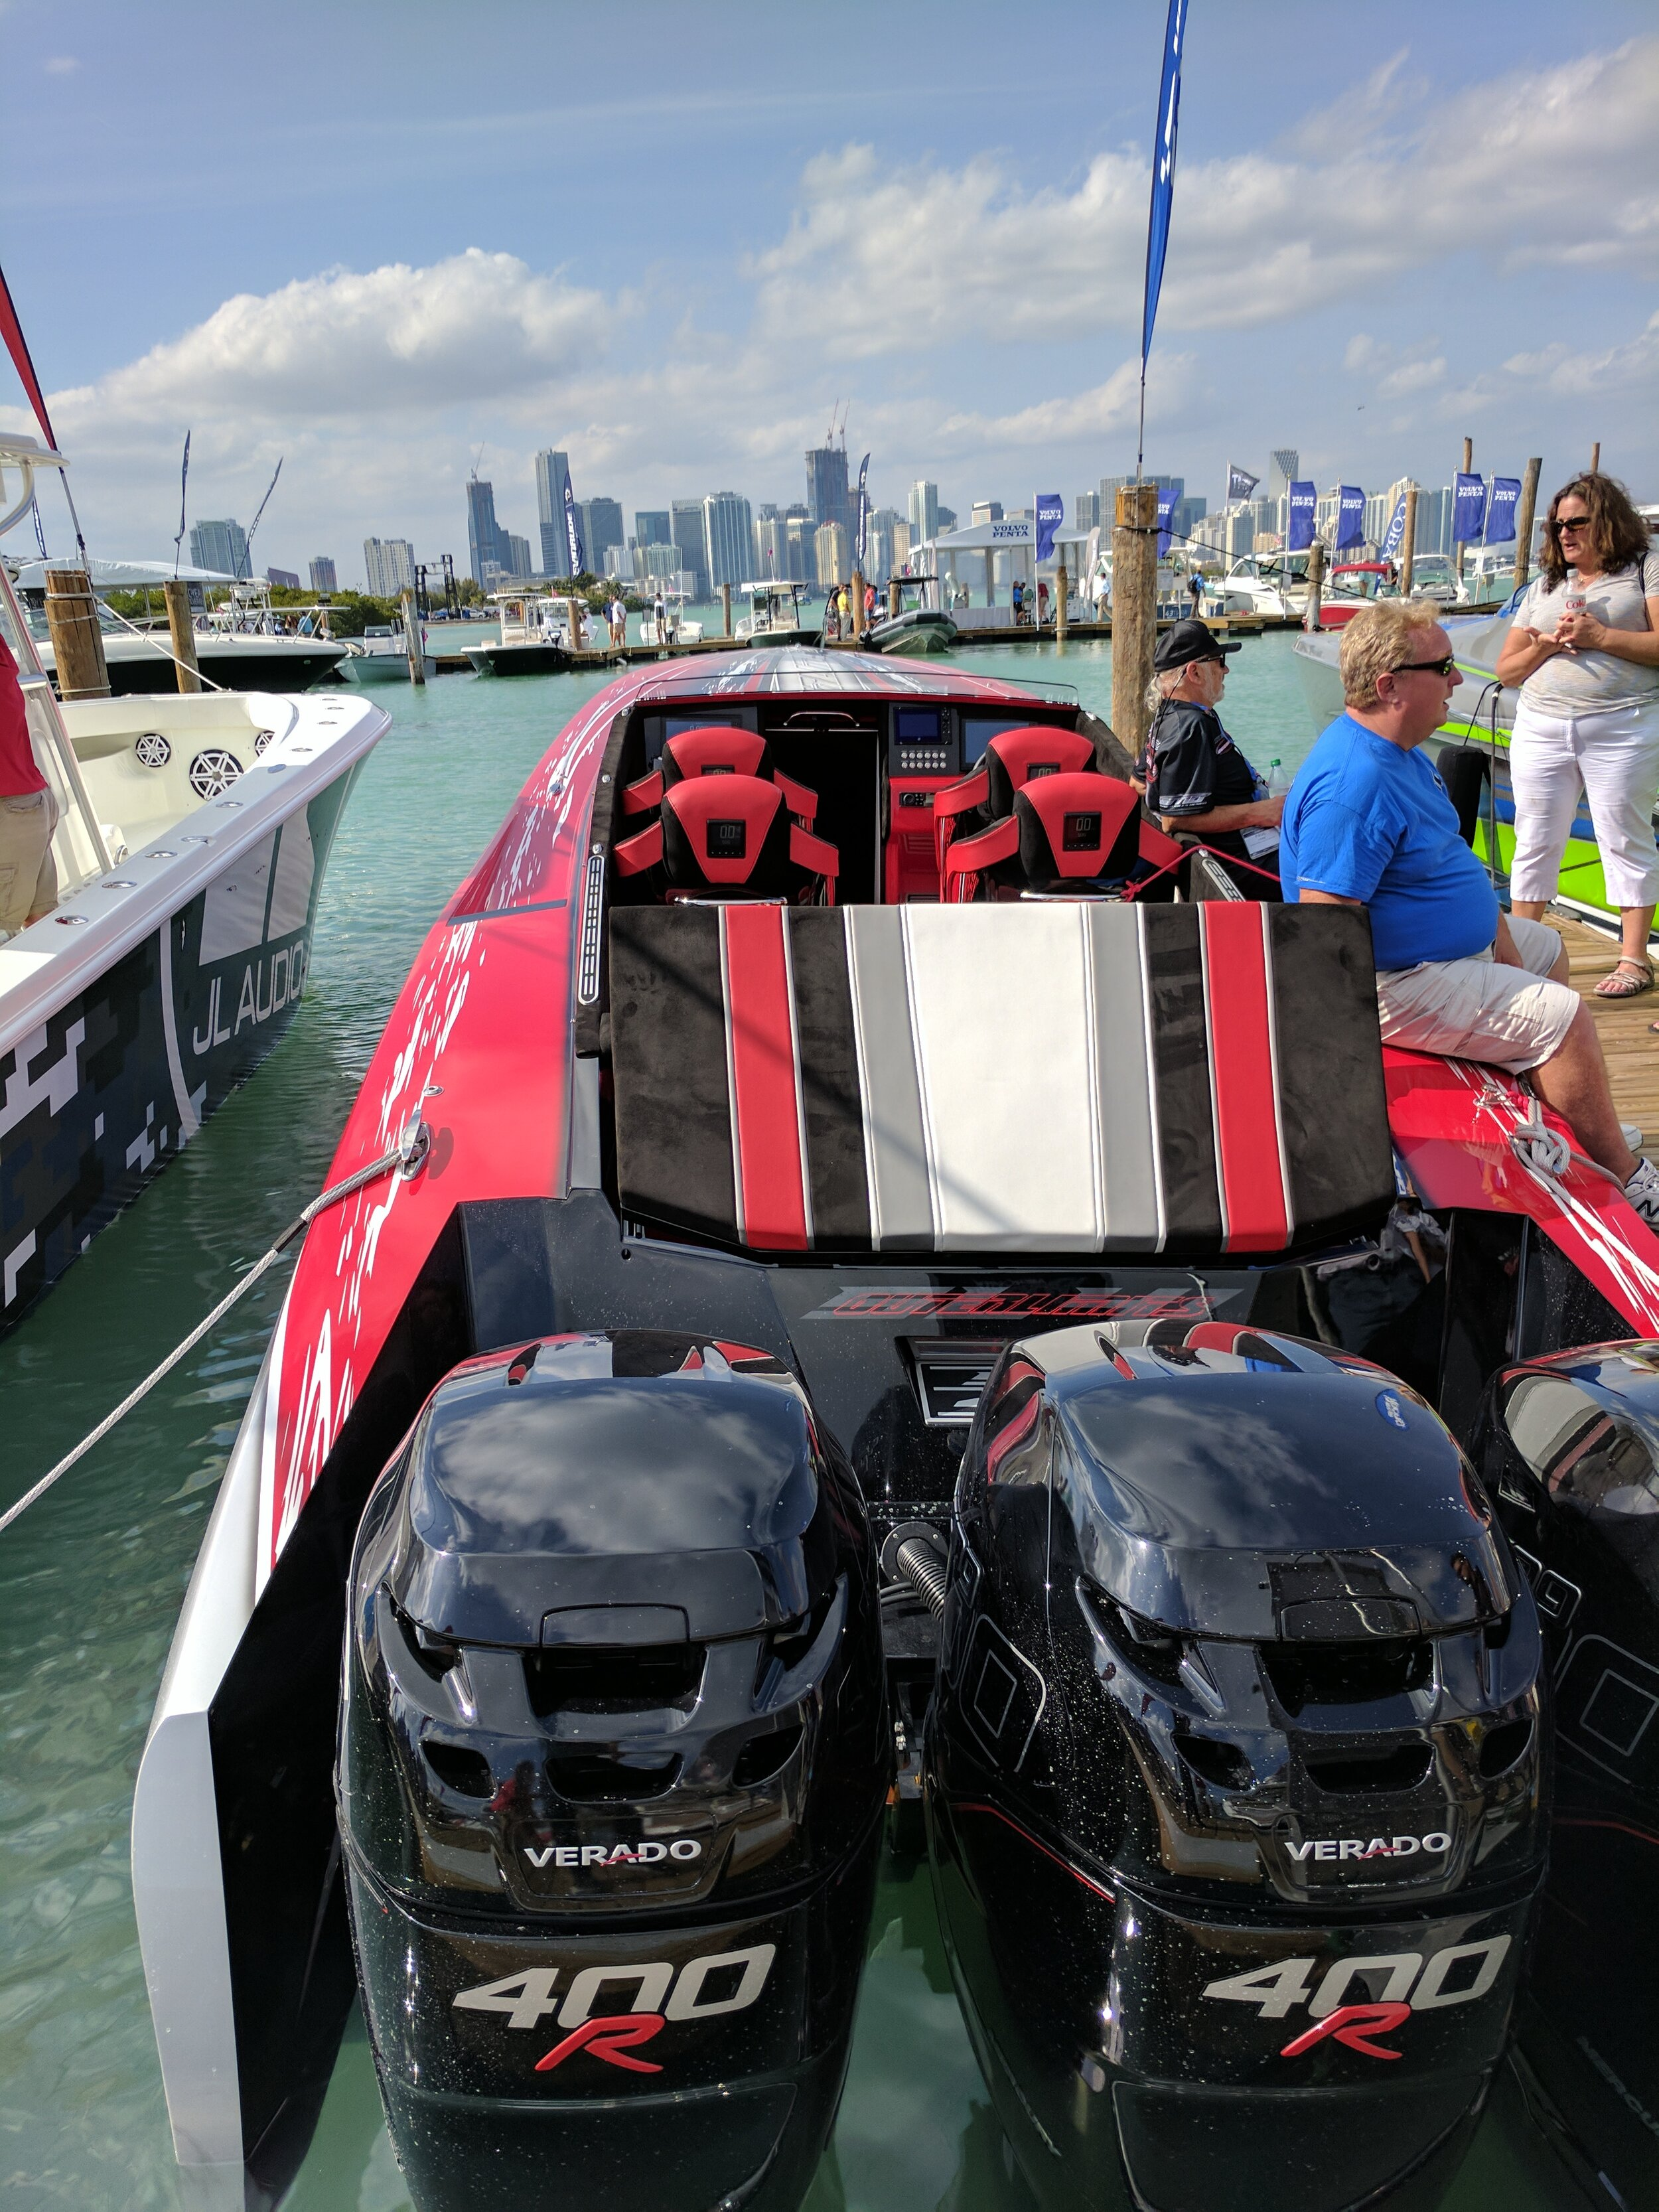 Outerlimits is really on to something with their SL-41 Outboard. Great performance, and very practical. Better seating options, offering a quiet ride, and economical to run.